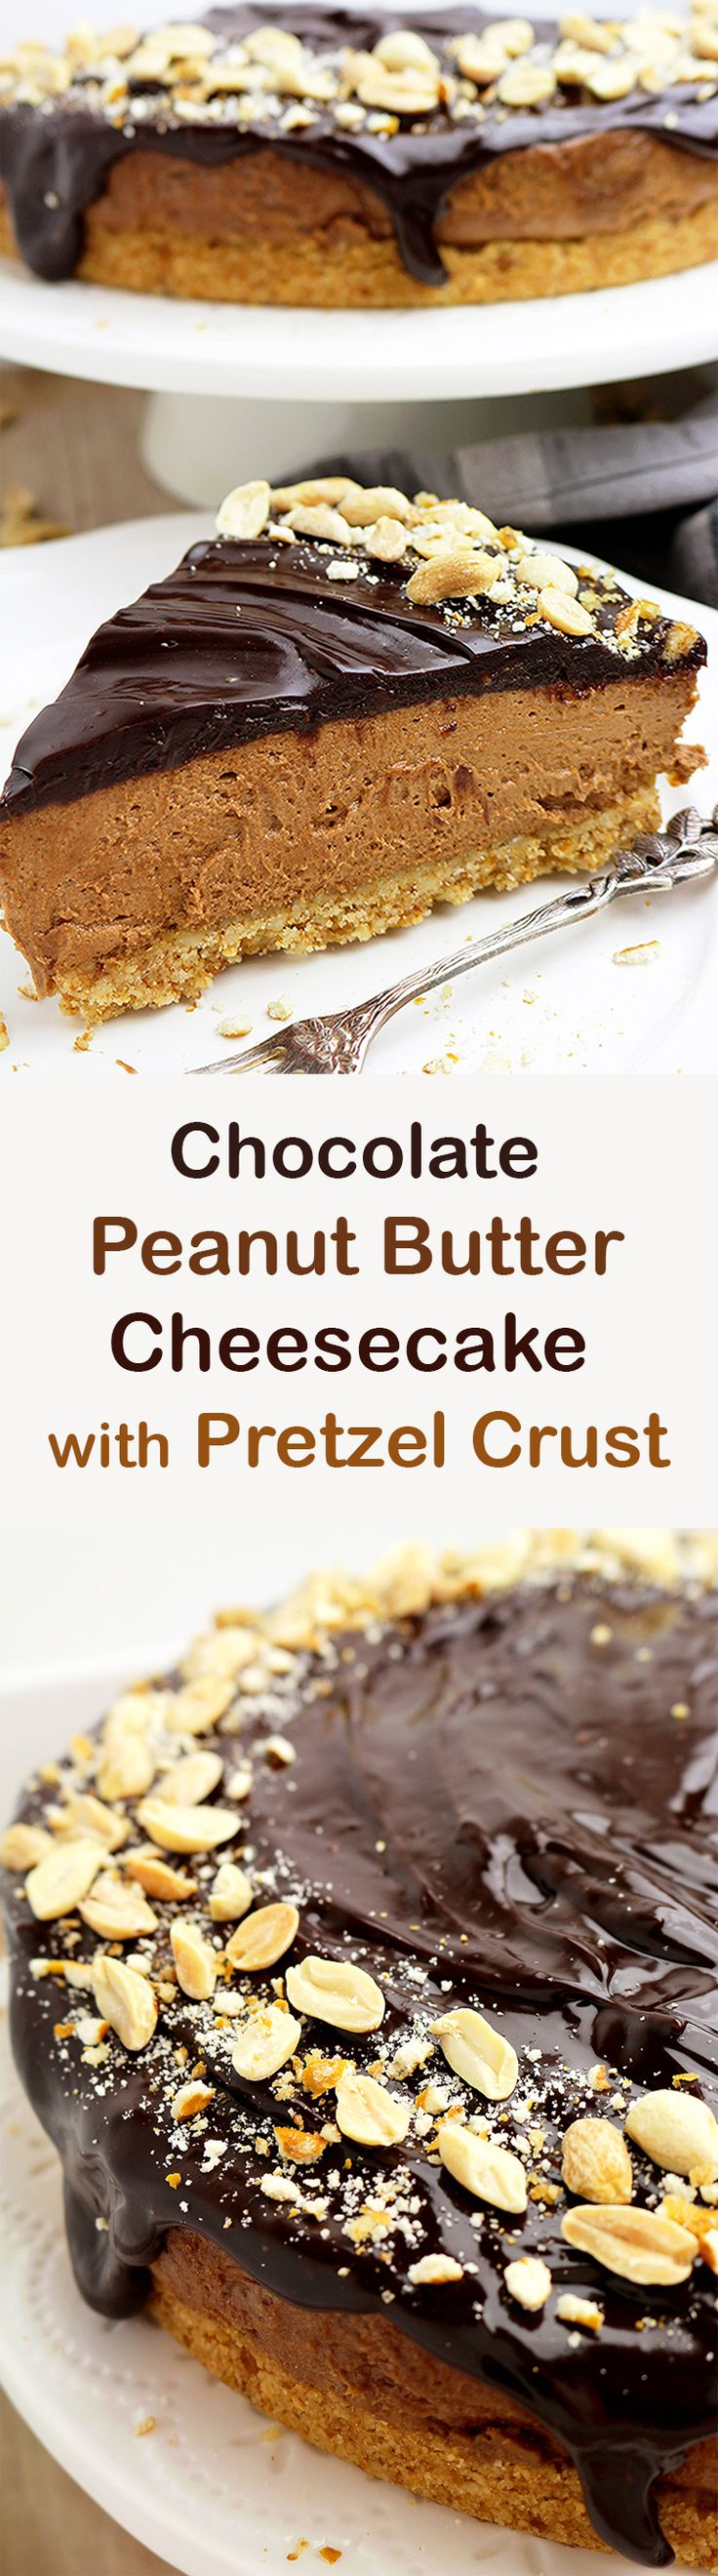 Chocolate Peanut Butter Cheesecake with Pretzel Crust - simple, quick and tasty special dessert, perfect for any occasion.You can make it for Father's Day ♥